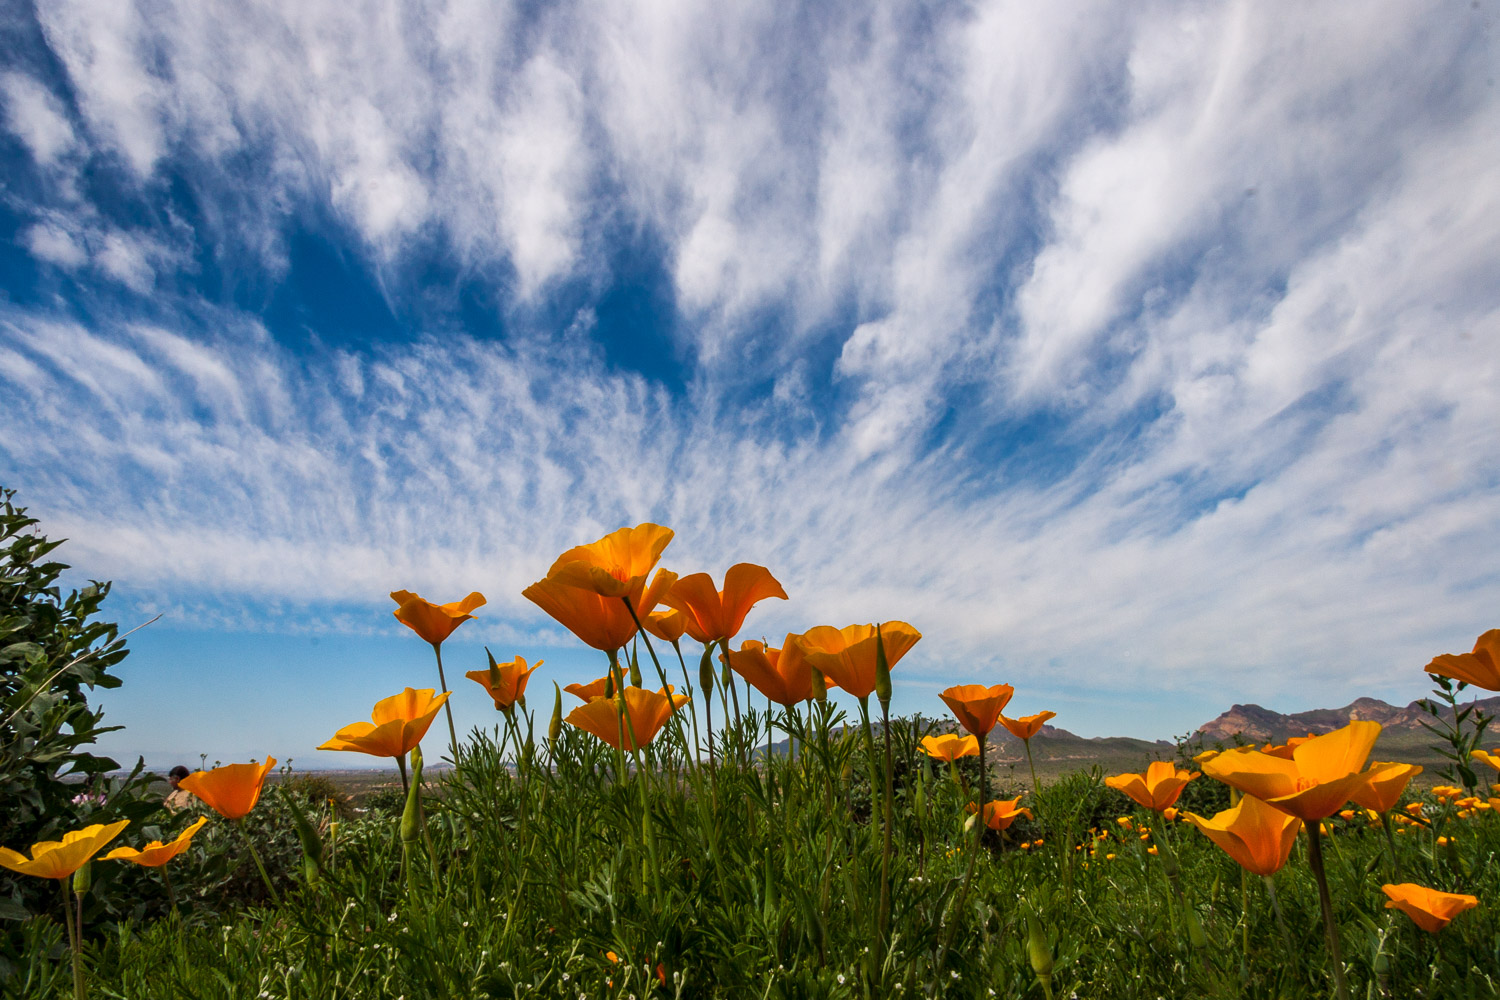 Poppies and clouds from the Superstition Mountains